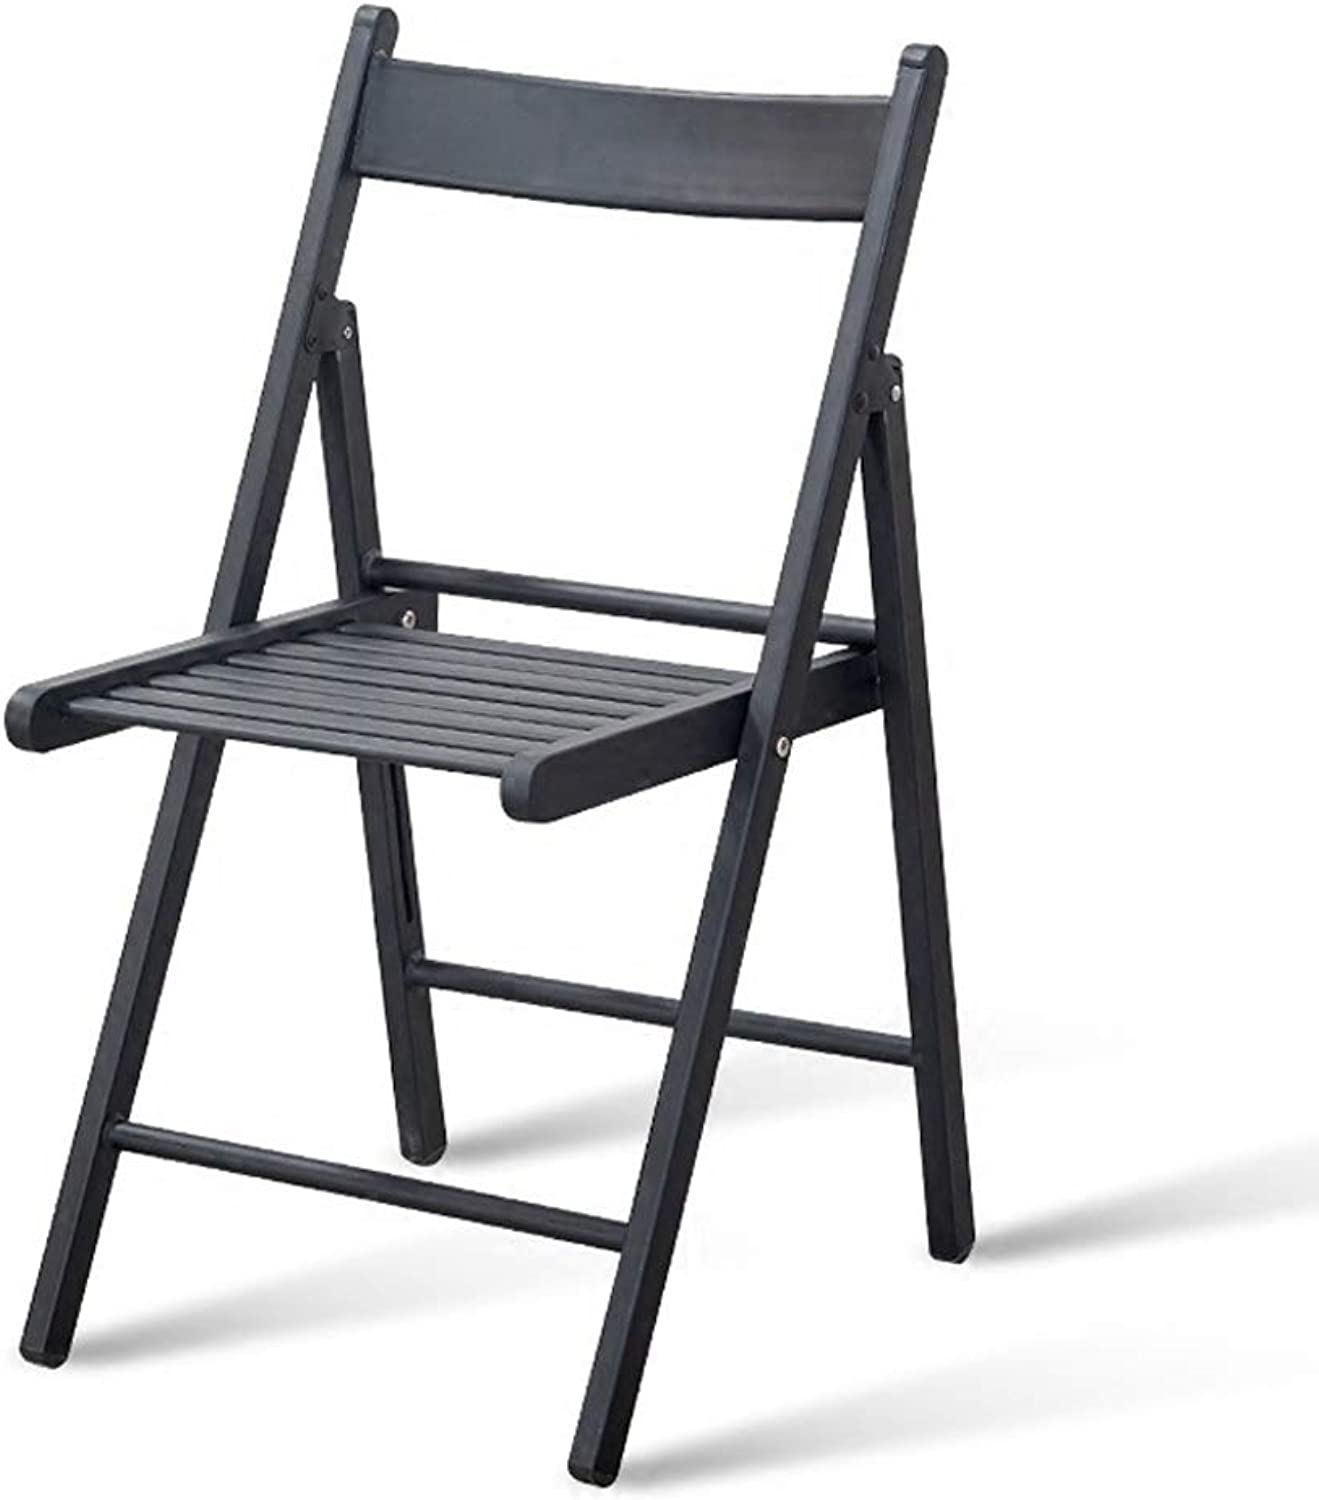 Folding Chair Wrought Iron Seat with Backrest Dining Chair Black Green Red Computer Chair Lounge Chair (color   Black)